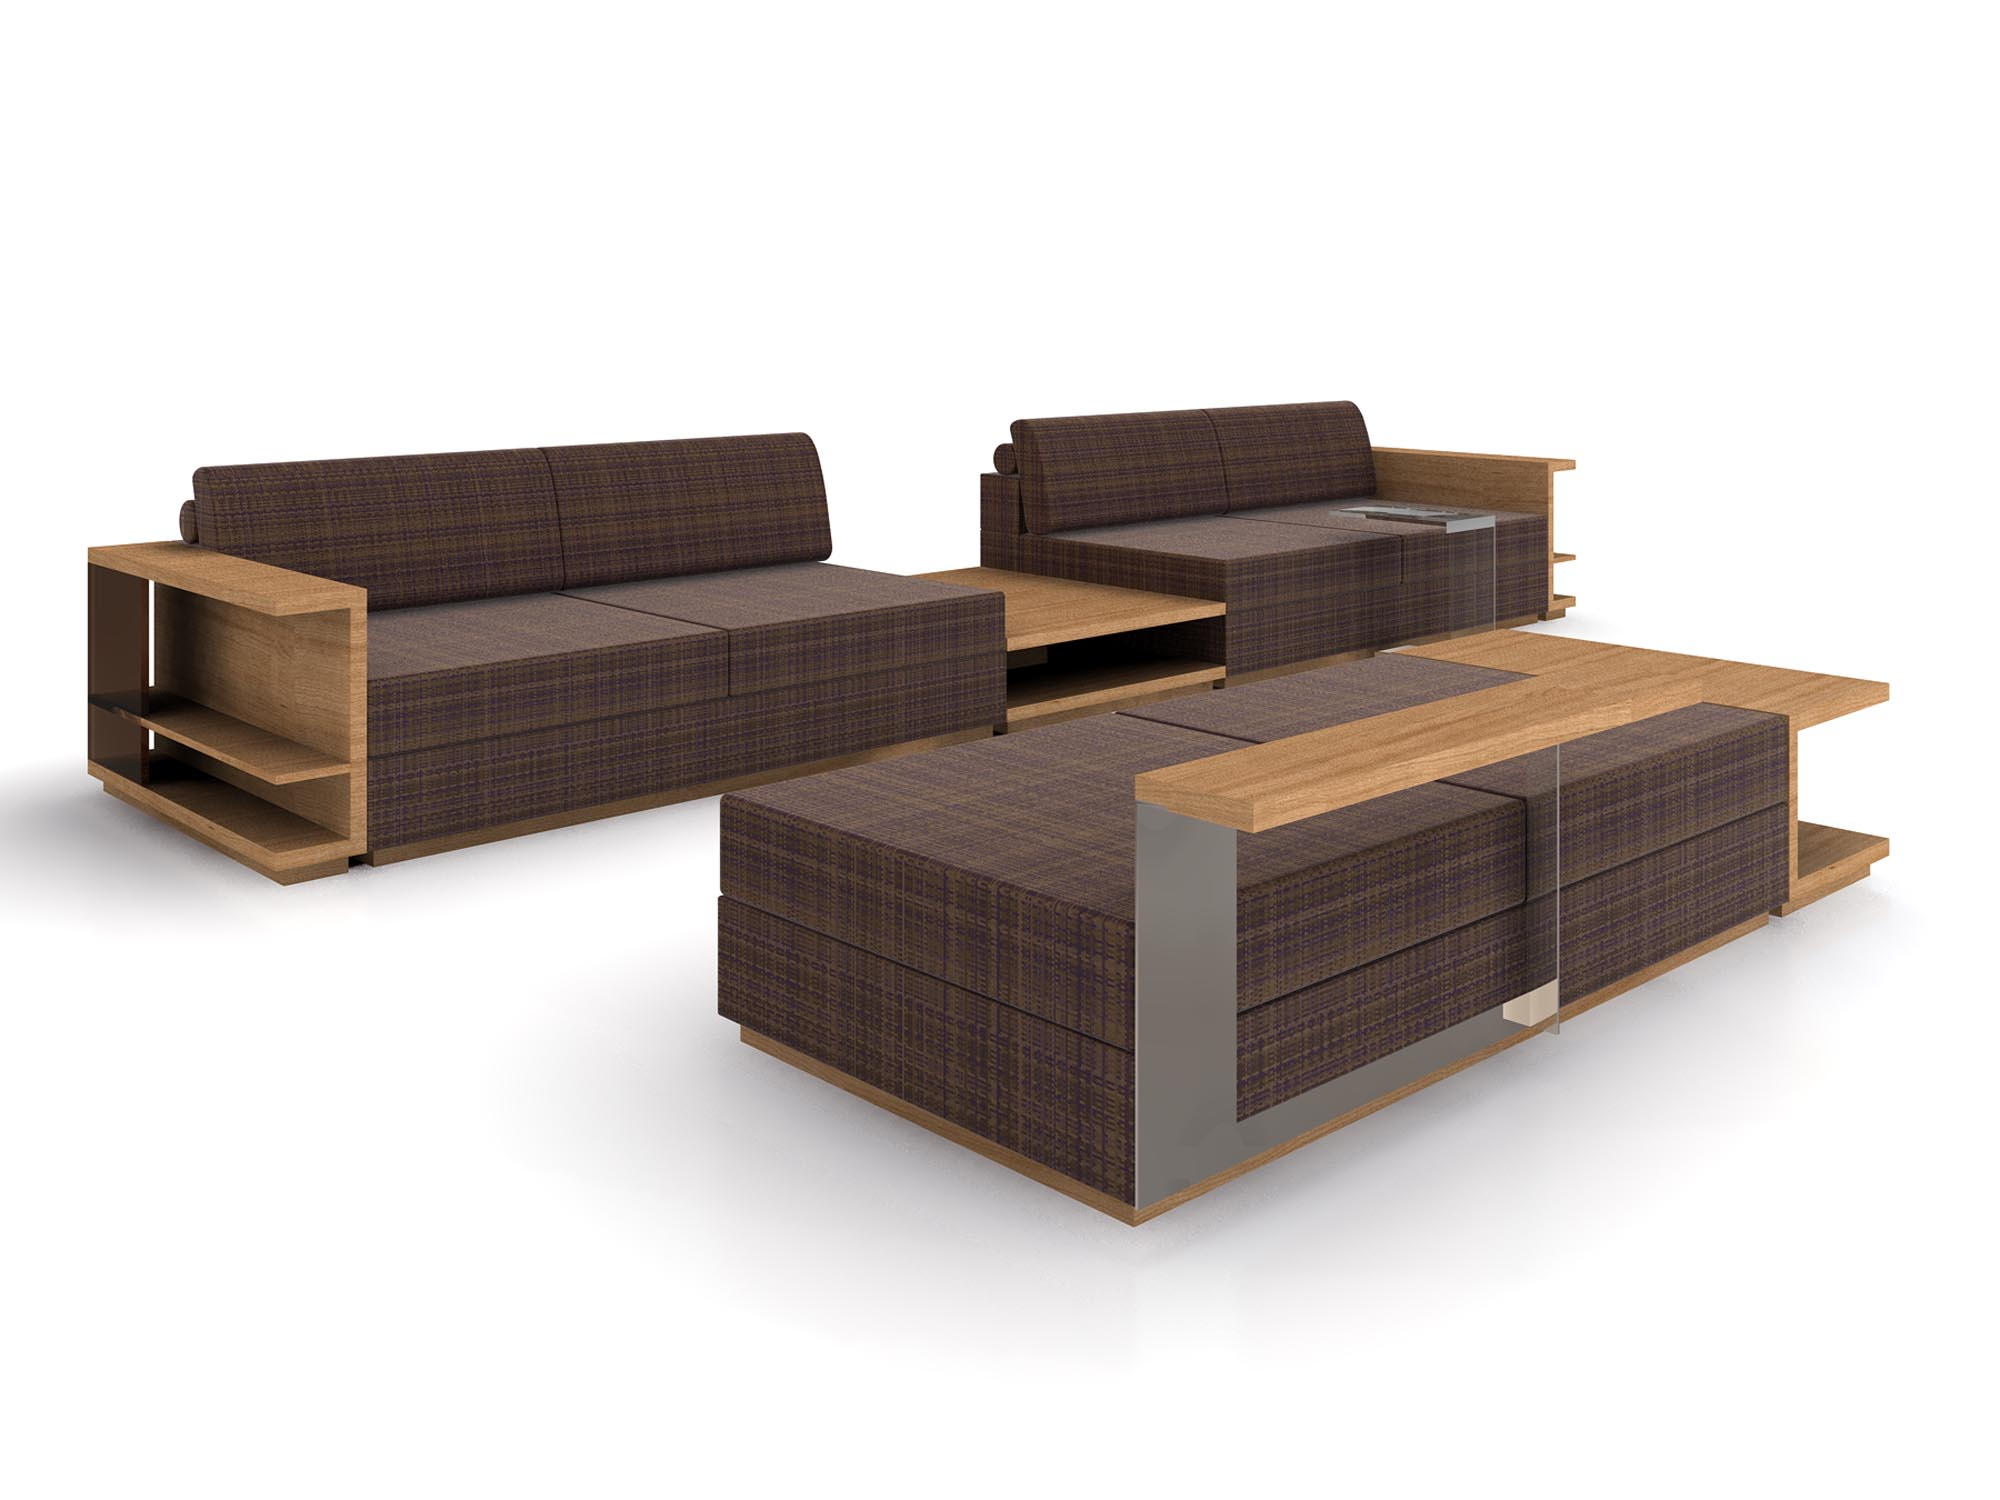 Modulares Couchsystem